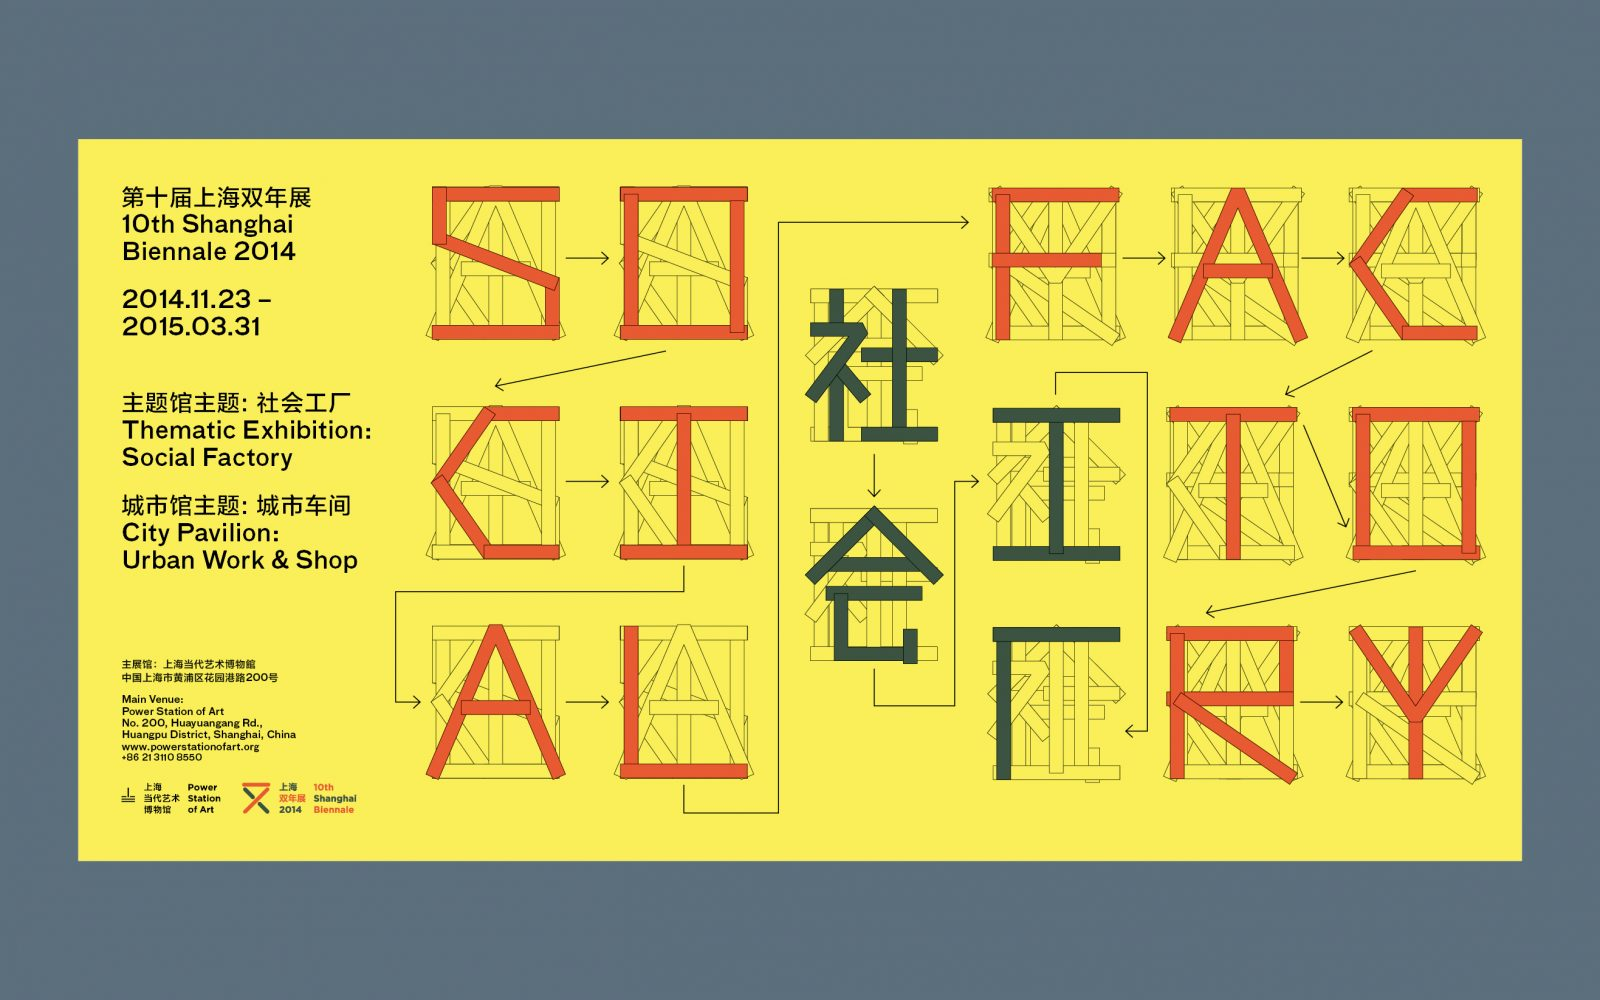 Maarten Kanters - 10th Shanghai Biennale: Social Factory – identity design and printed collateral<br /> Assisting Lu Liang / The Exercises.